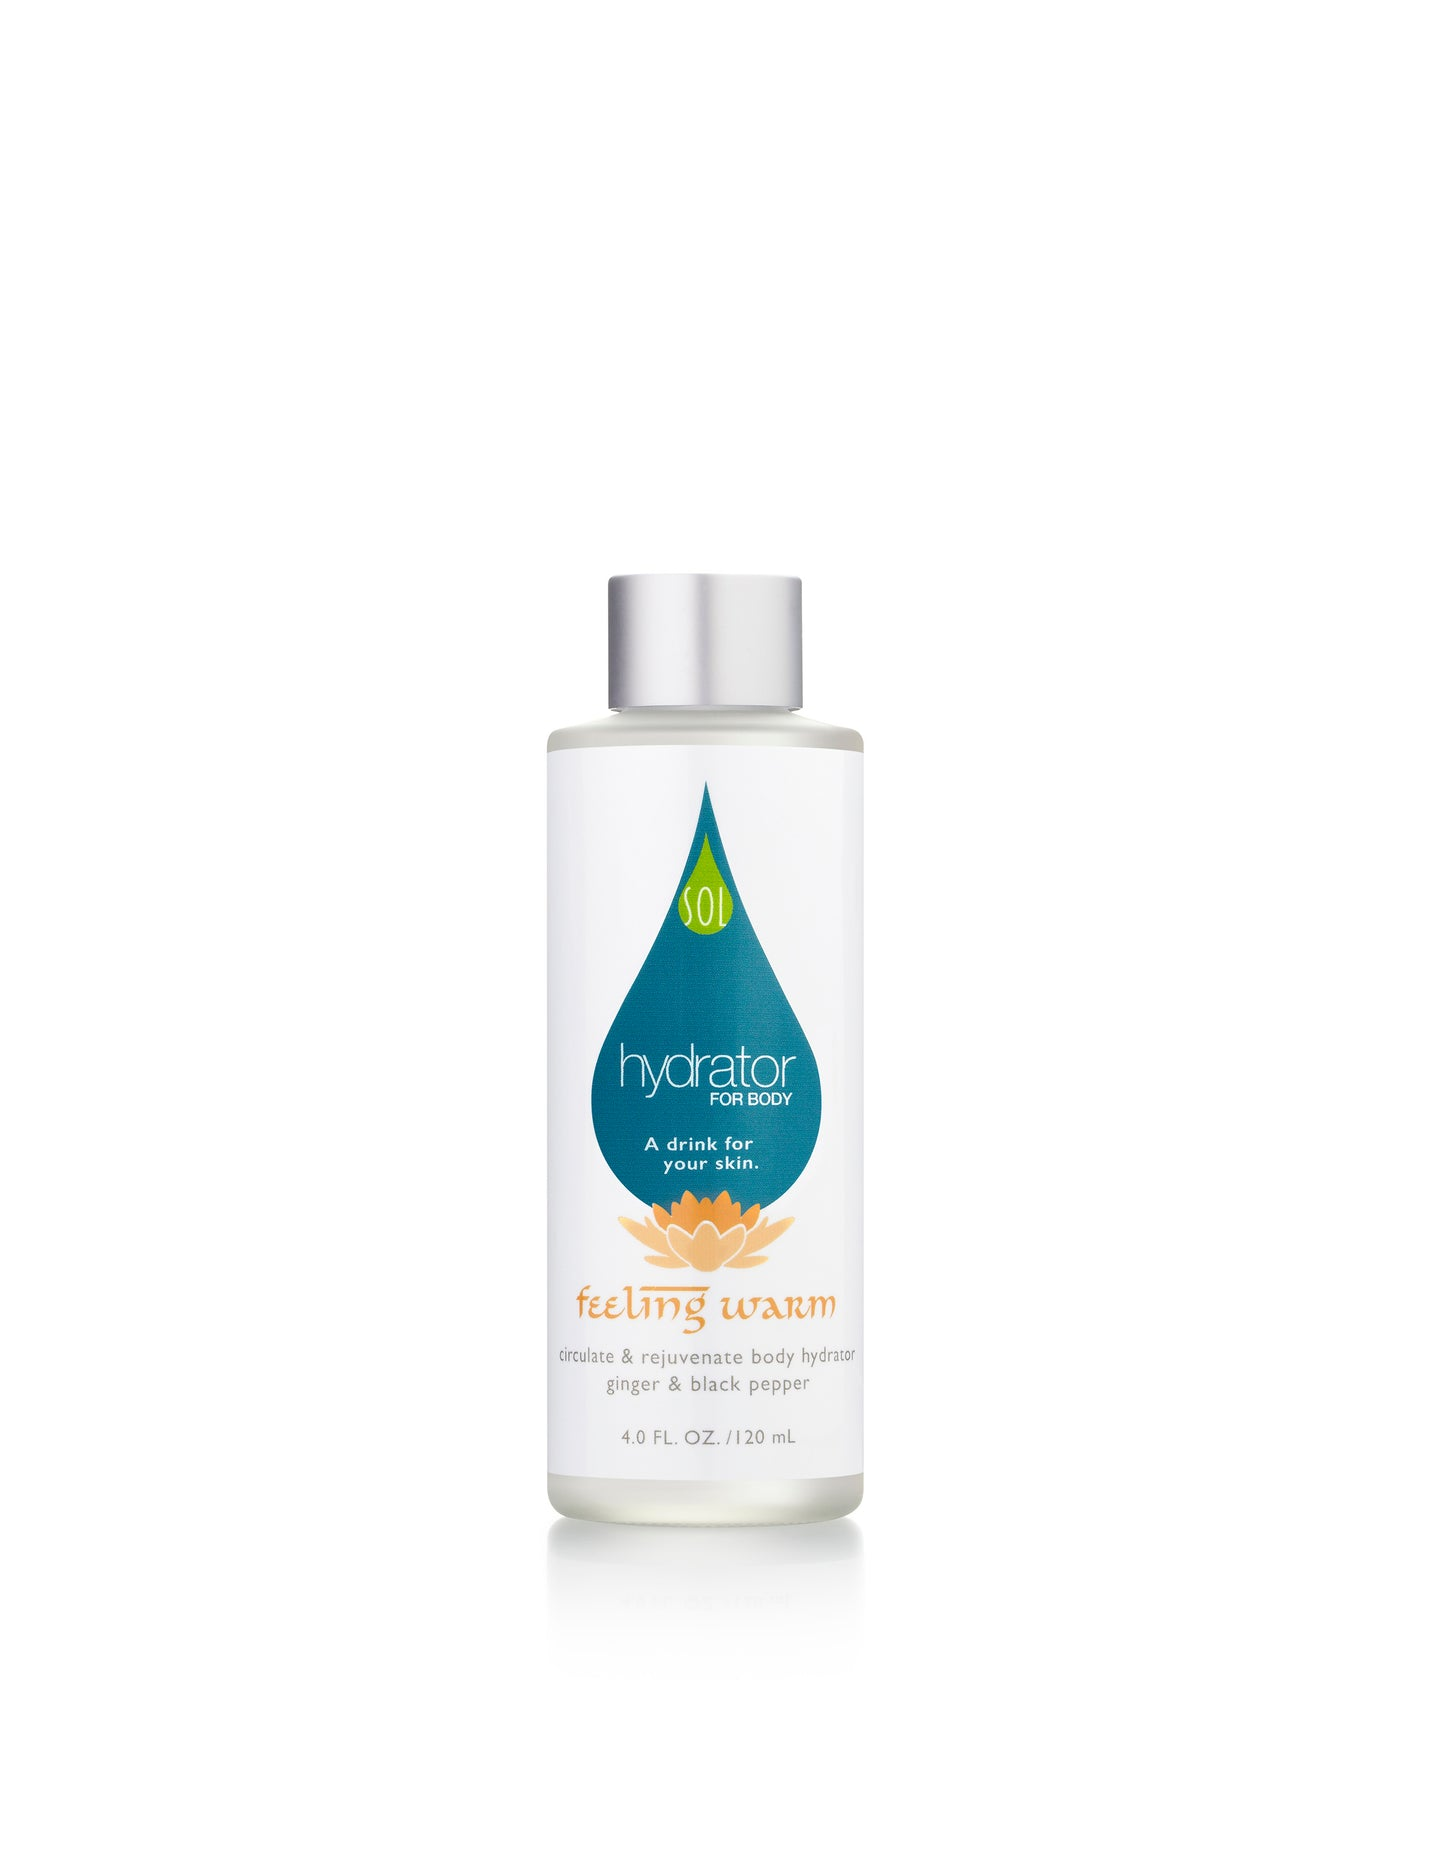 Feeling Warm Circulate & Rejuvenate Body Hydrator